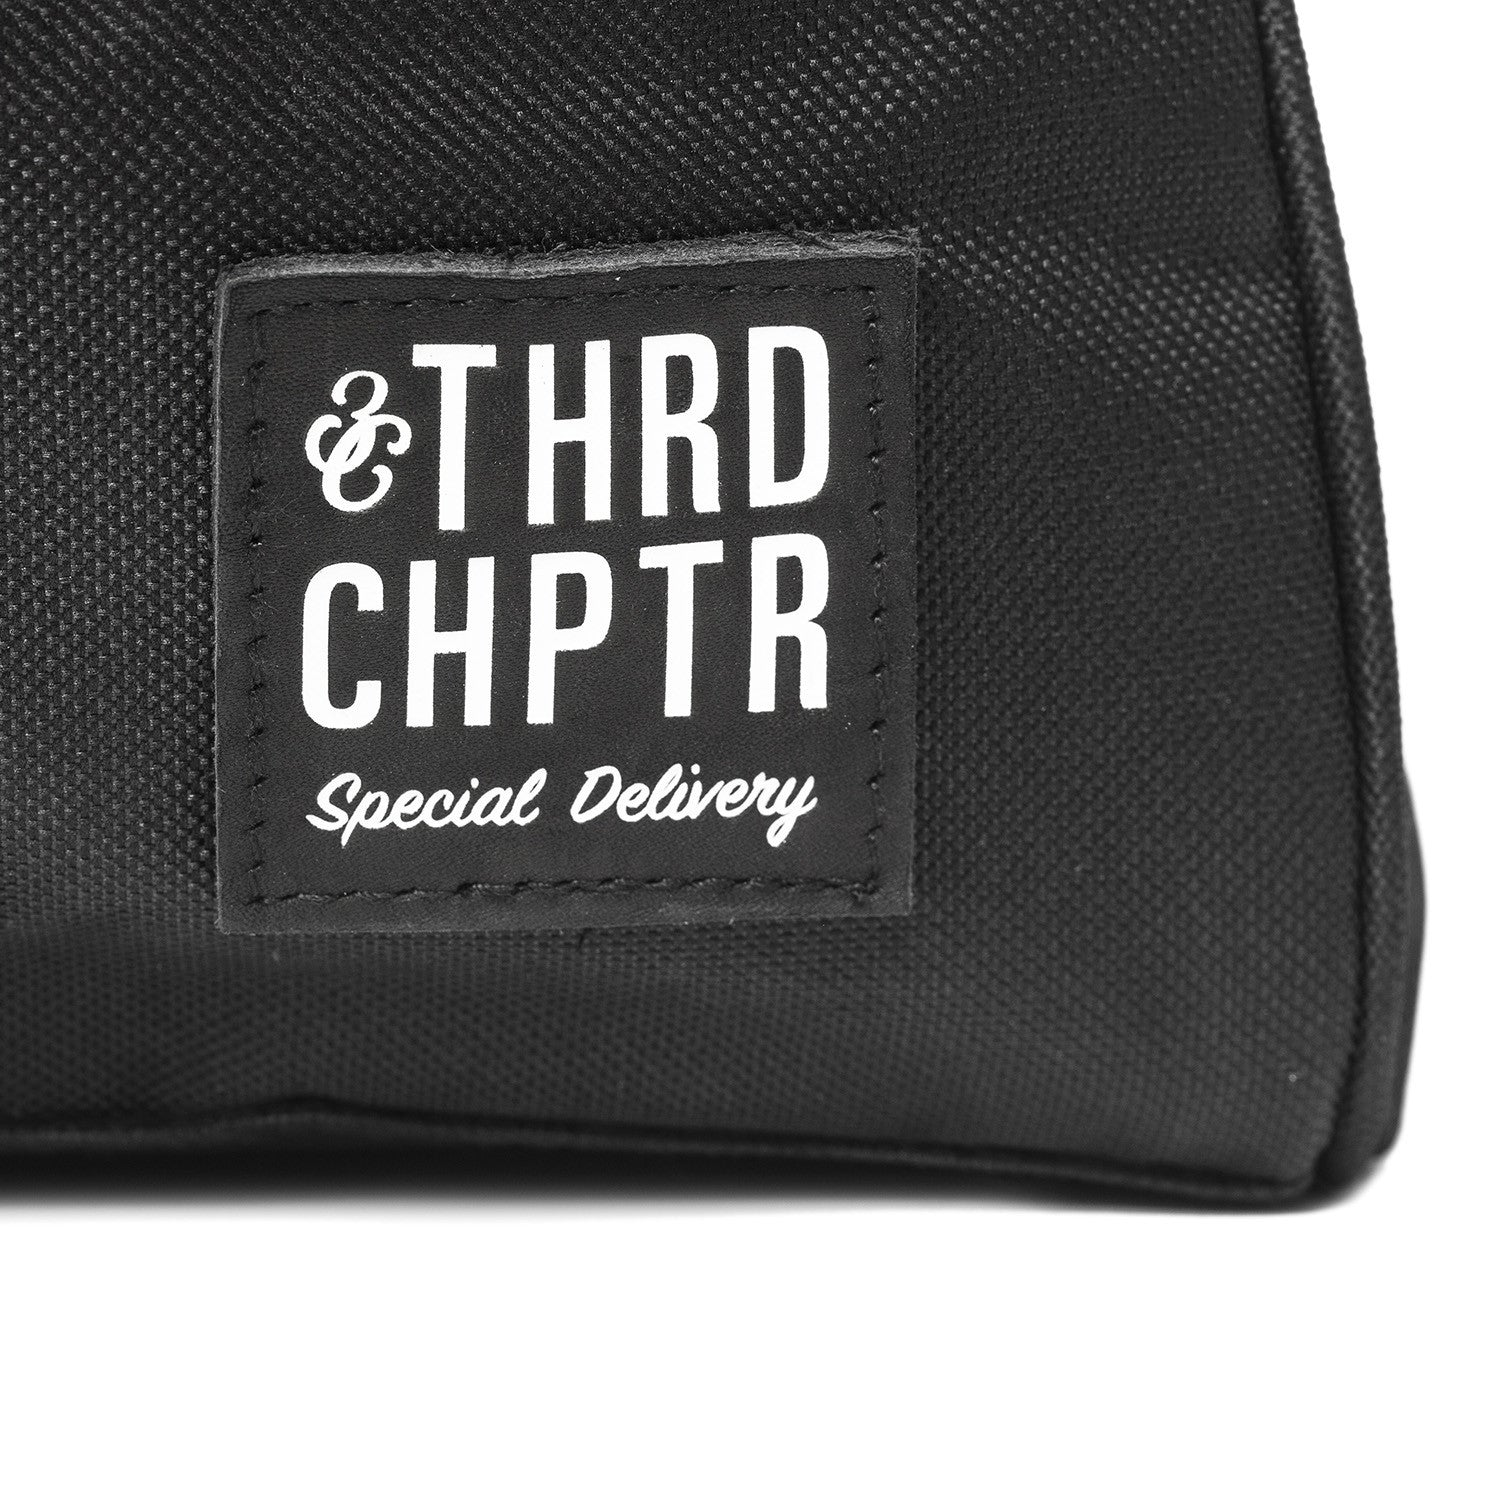 S.D Duffle Bag (Smell Proof) - 3rdchapter - 6